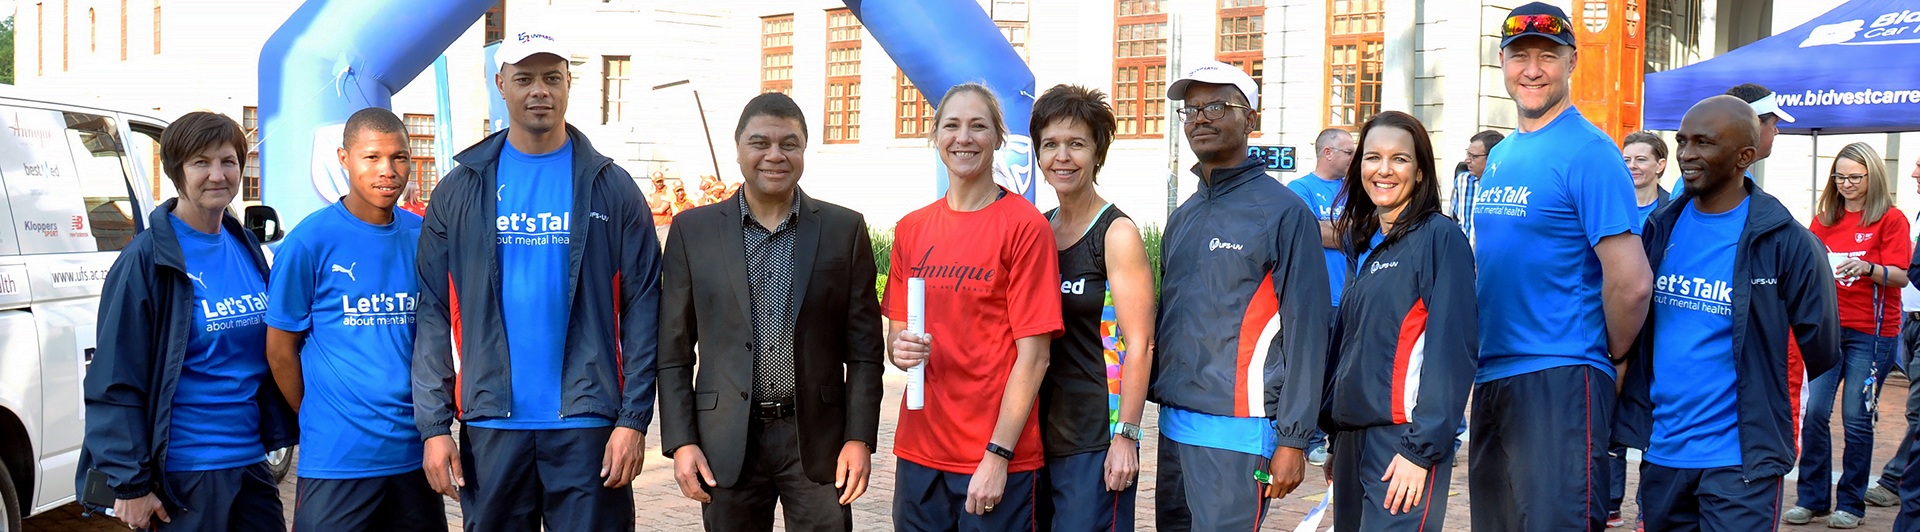 Run to Stellenbosch send off